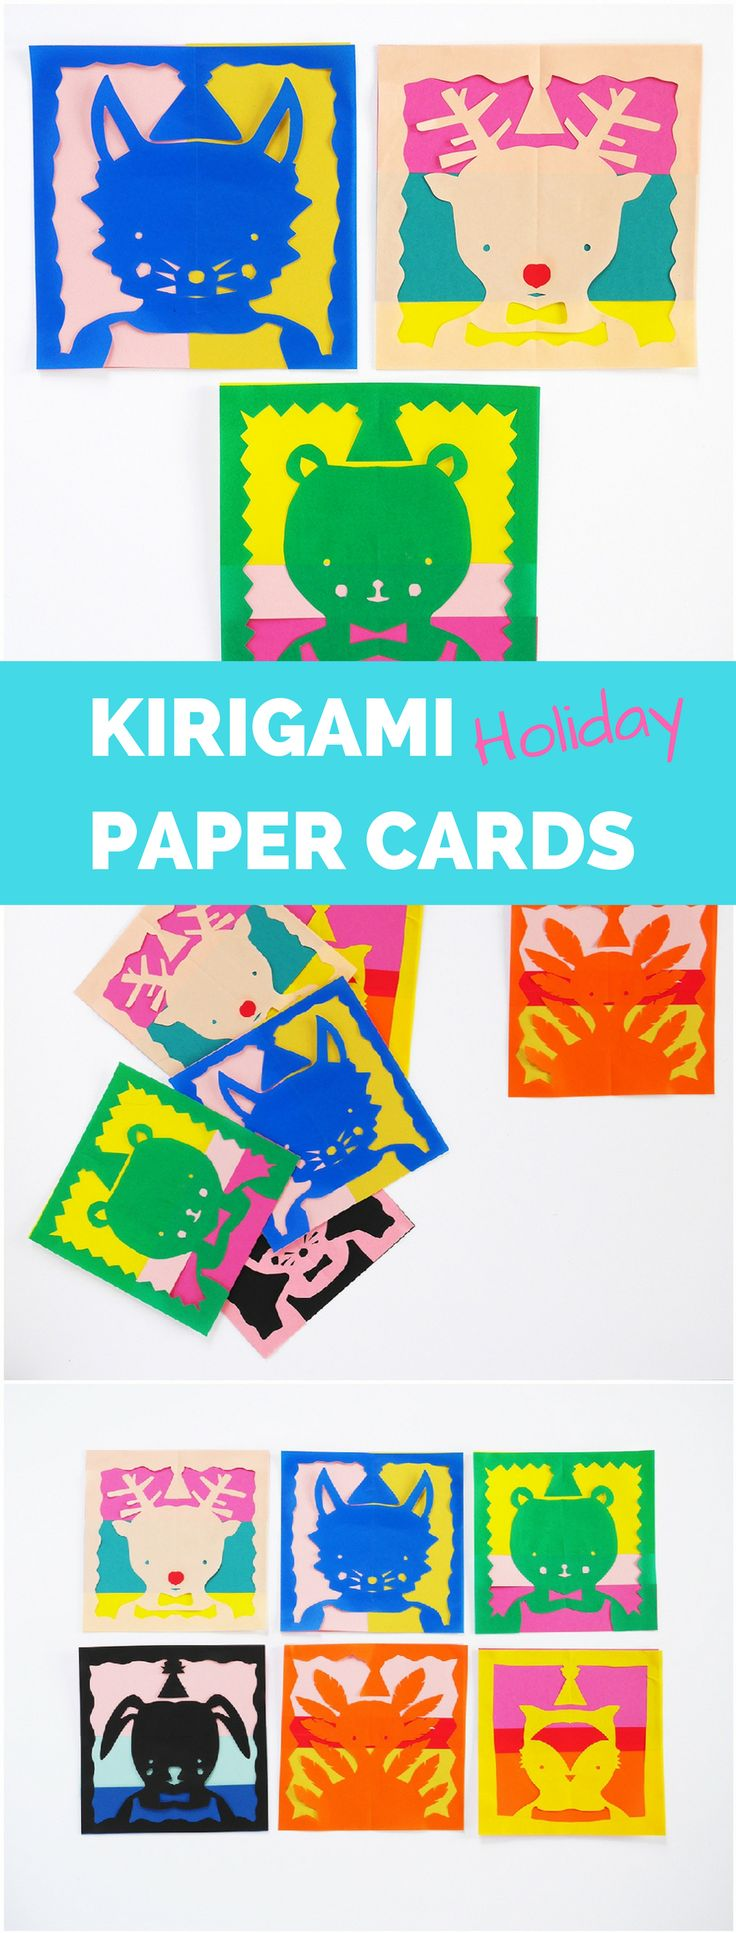 Make cute holiday Kirigami Animal Paper Cards. DIY included #kirigami #christmascrafts #christmascraftsforkids #origamiart